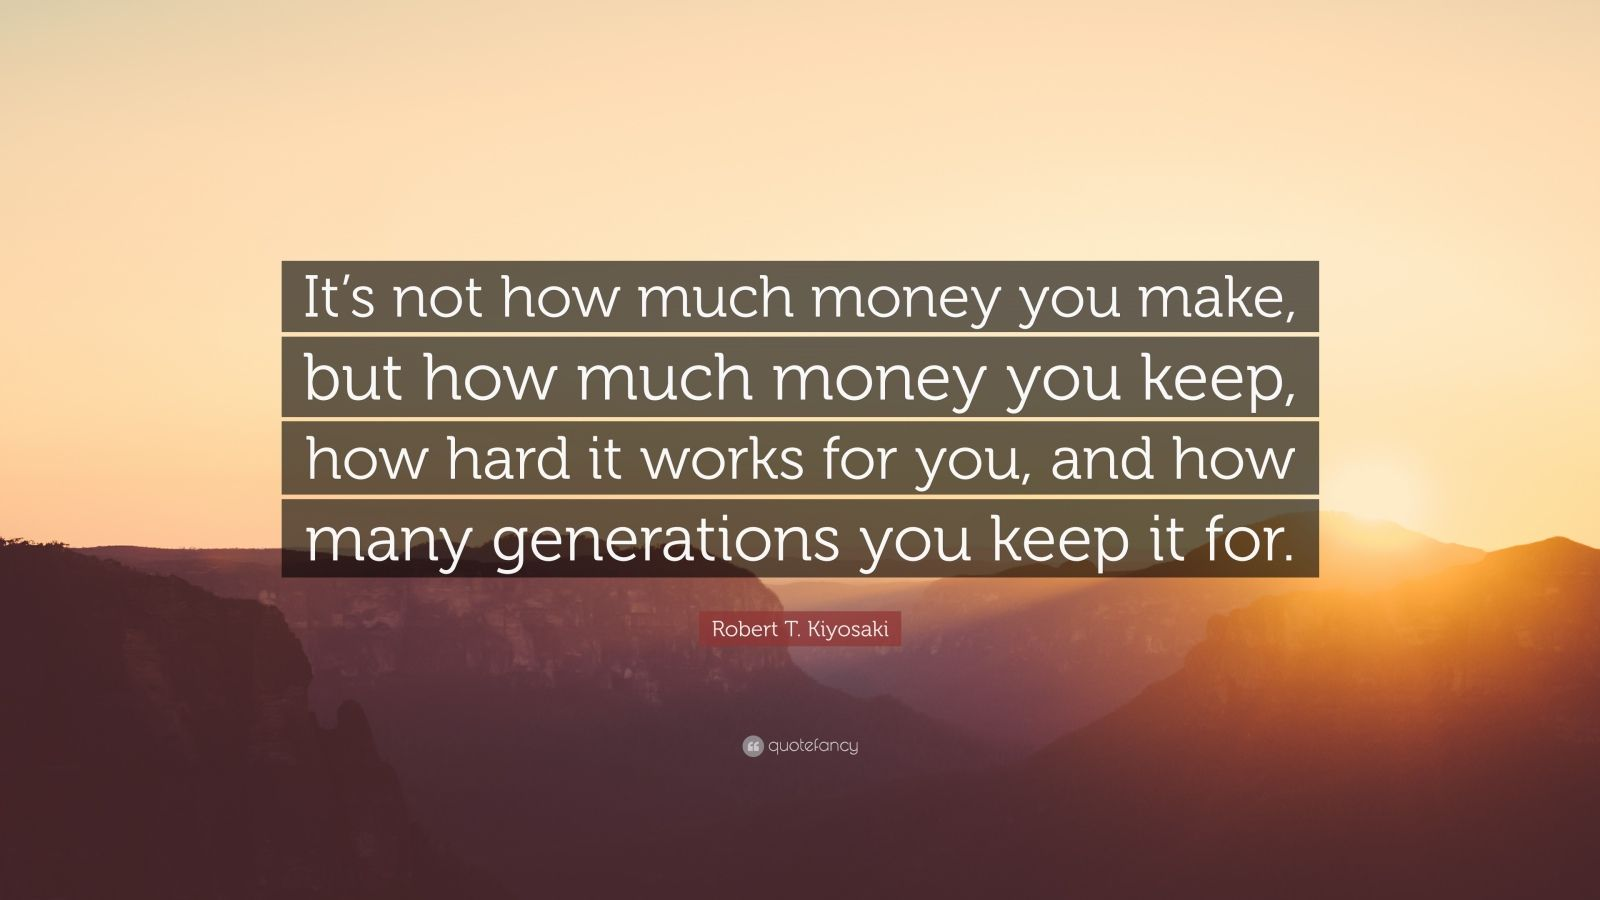 "Robert T. Kiyosaki Quote: ""It's not how much money you make, but how much money you keep, how hard it works for you, and how many generations you keep it for."""